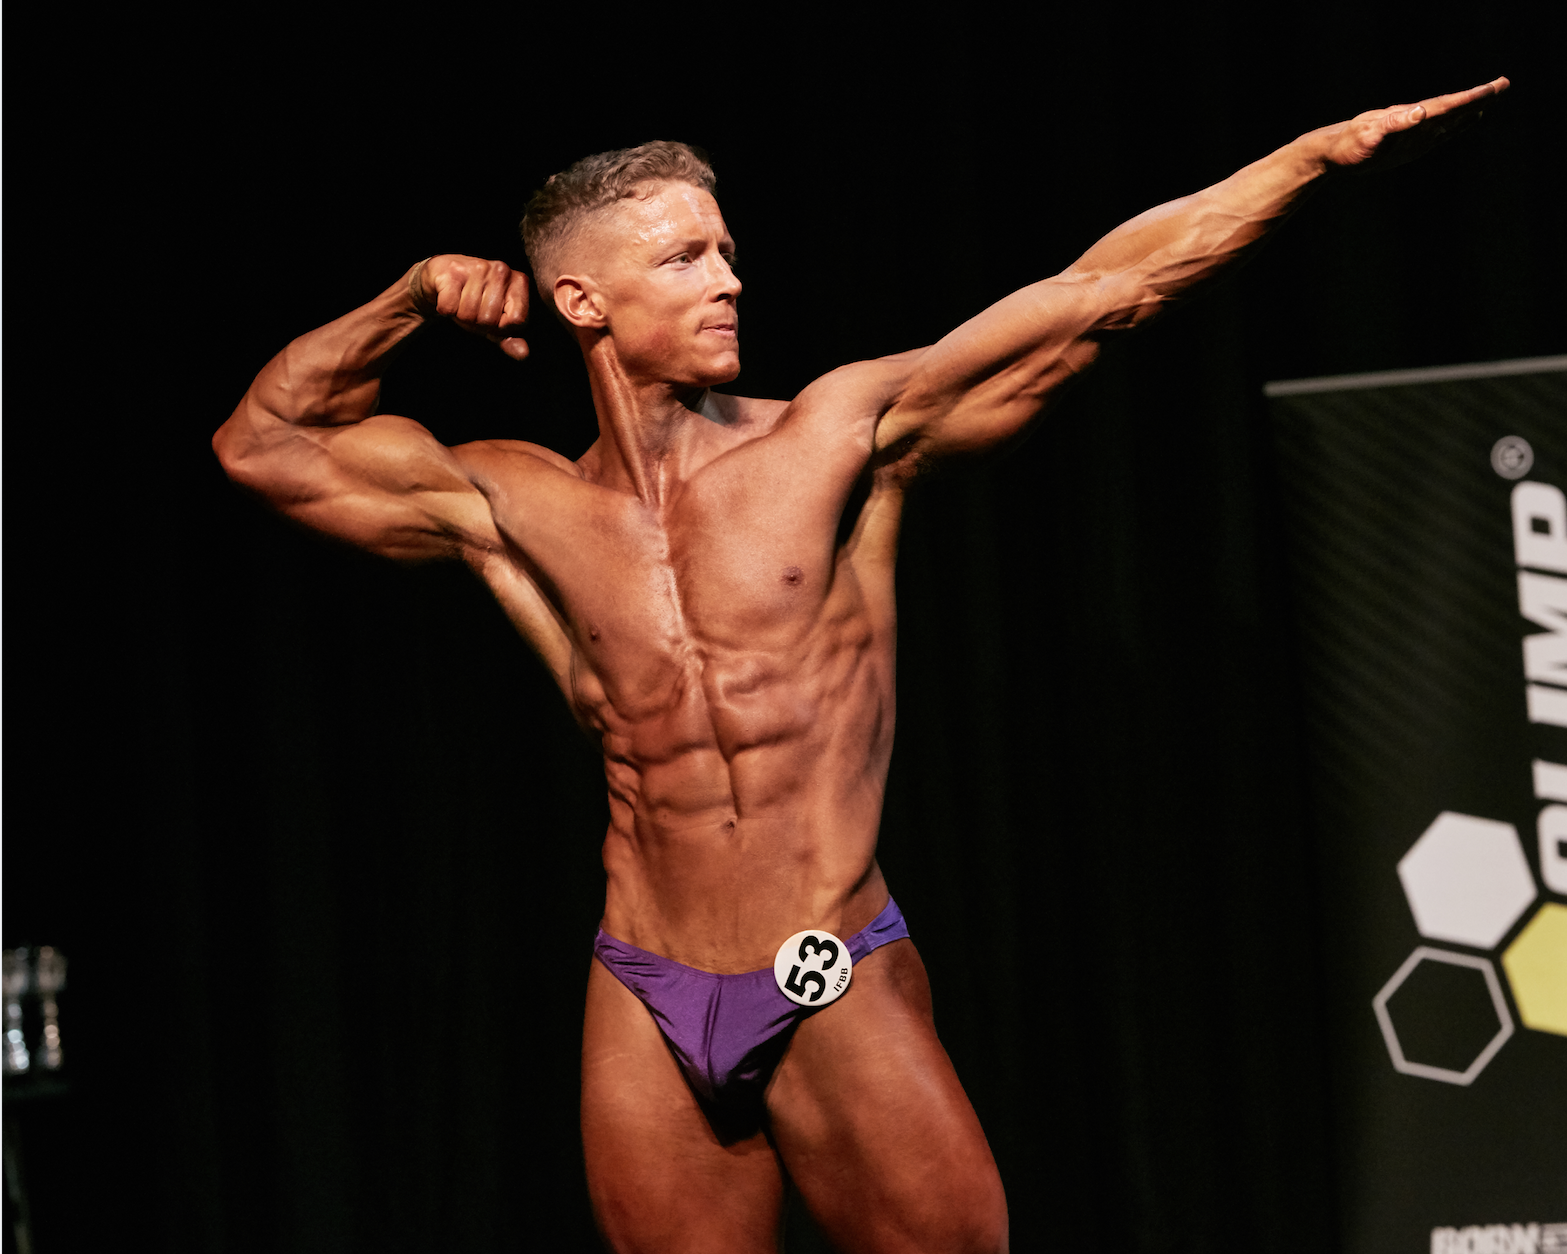 Britain's James Price, pictured here at the UK Nationals in April. Photo by Christopher Bailey